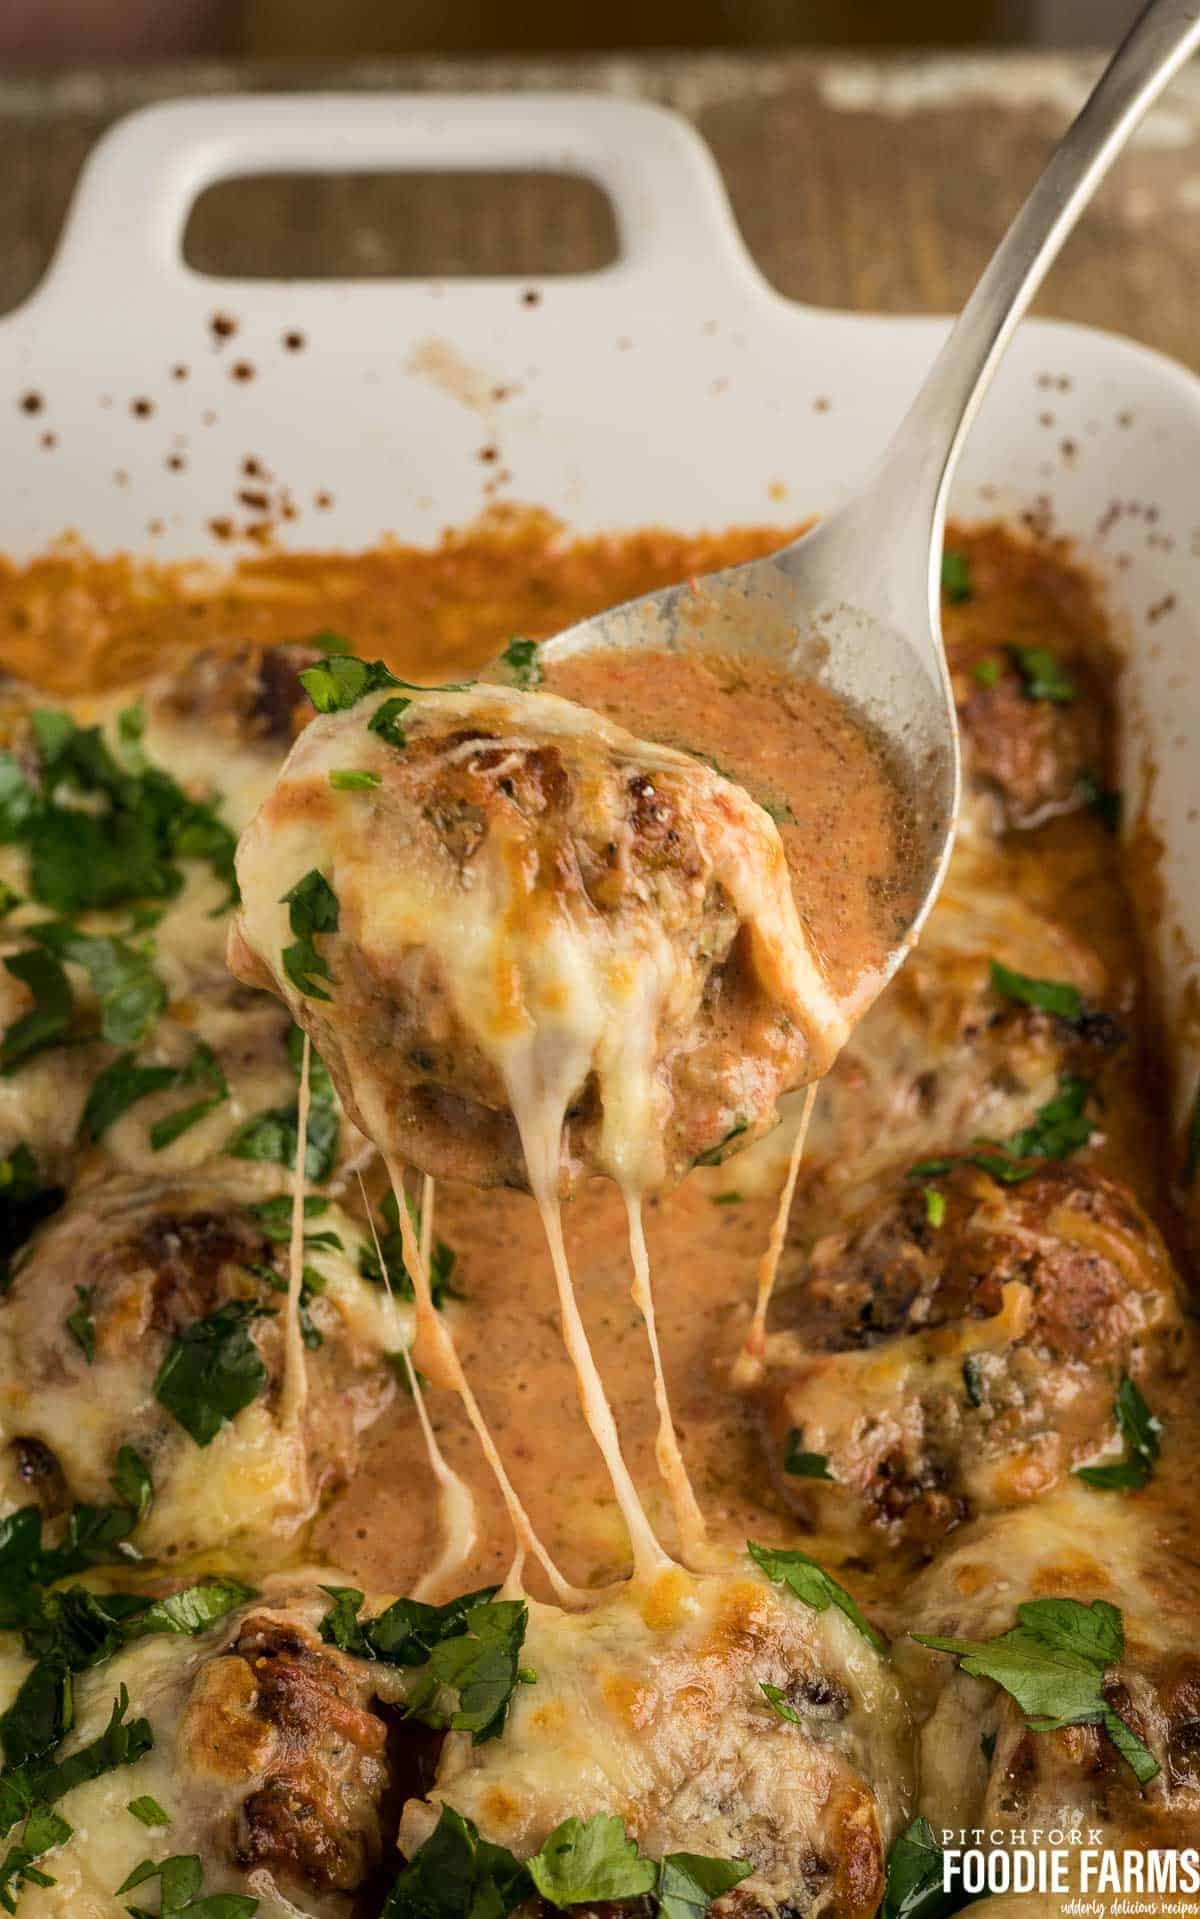 A cheesy meatball being lifted out of a white casserole dish on a spoon.